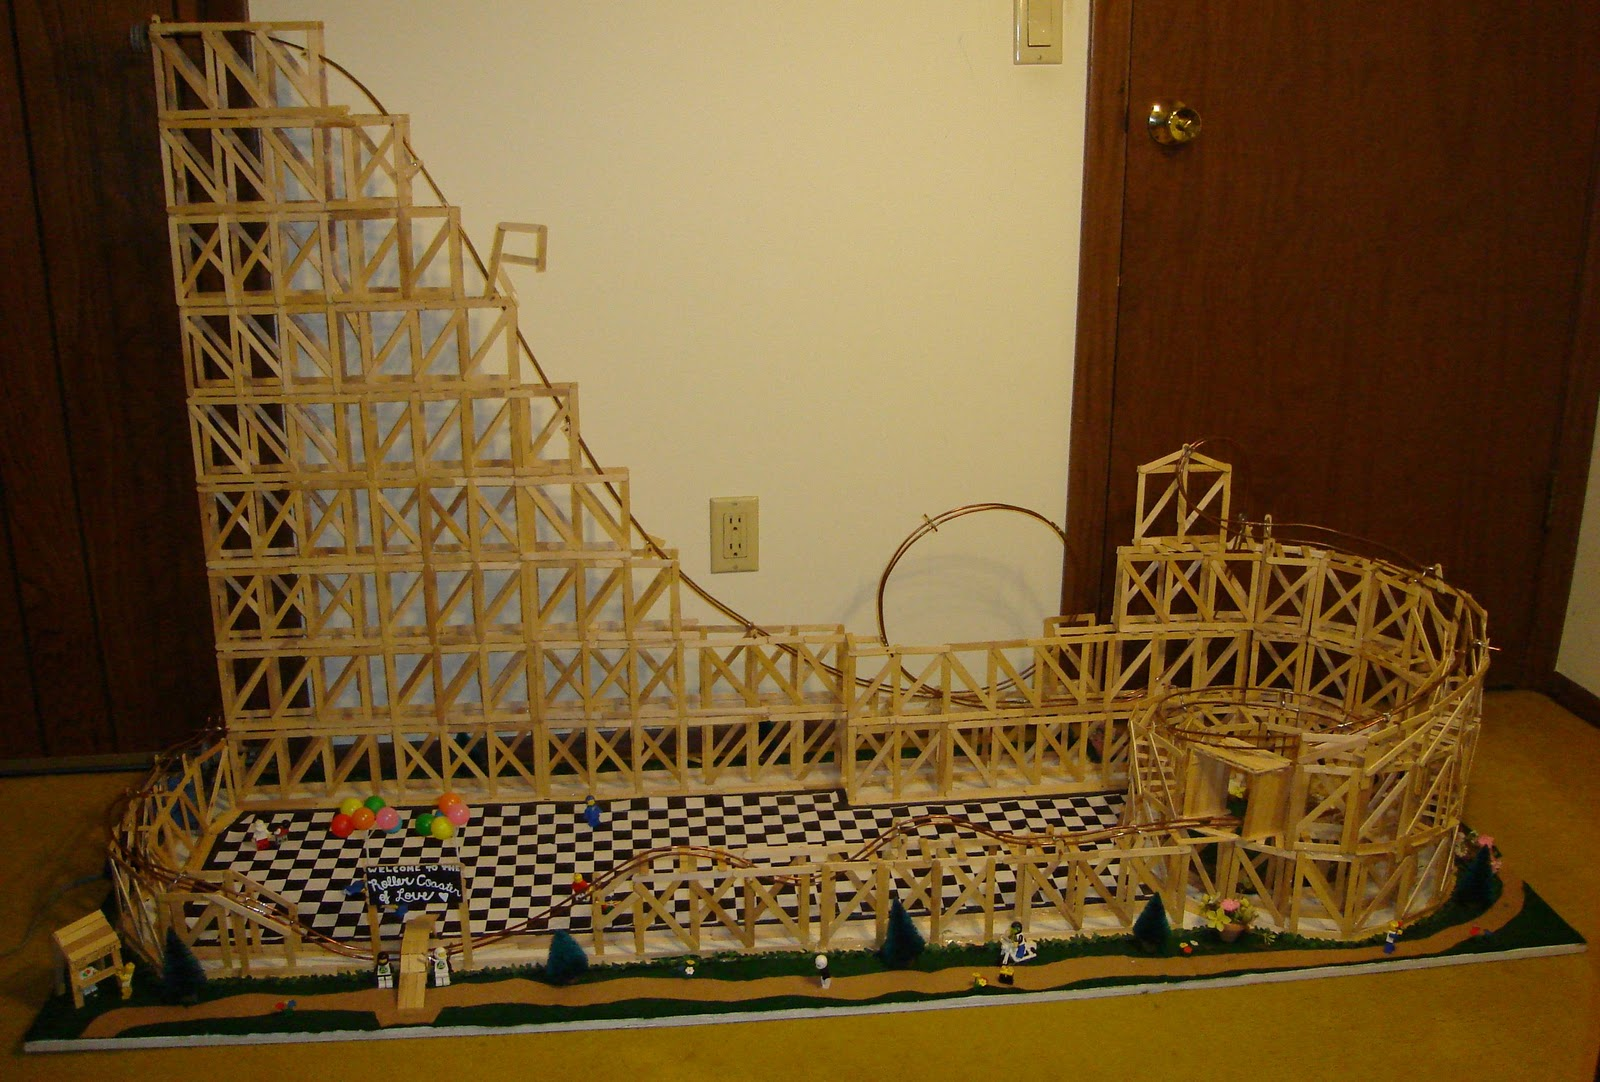 Whitham Physics: Marble Roller Coaster Examples